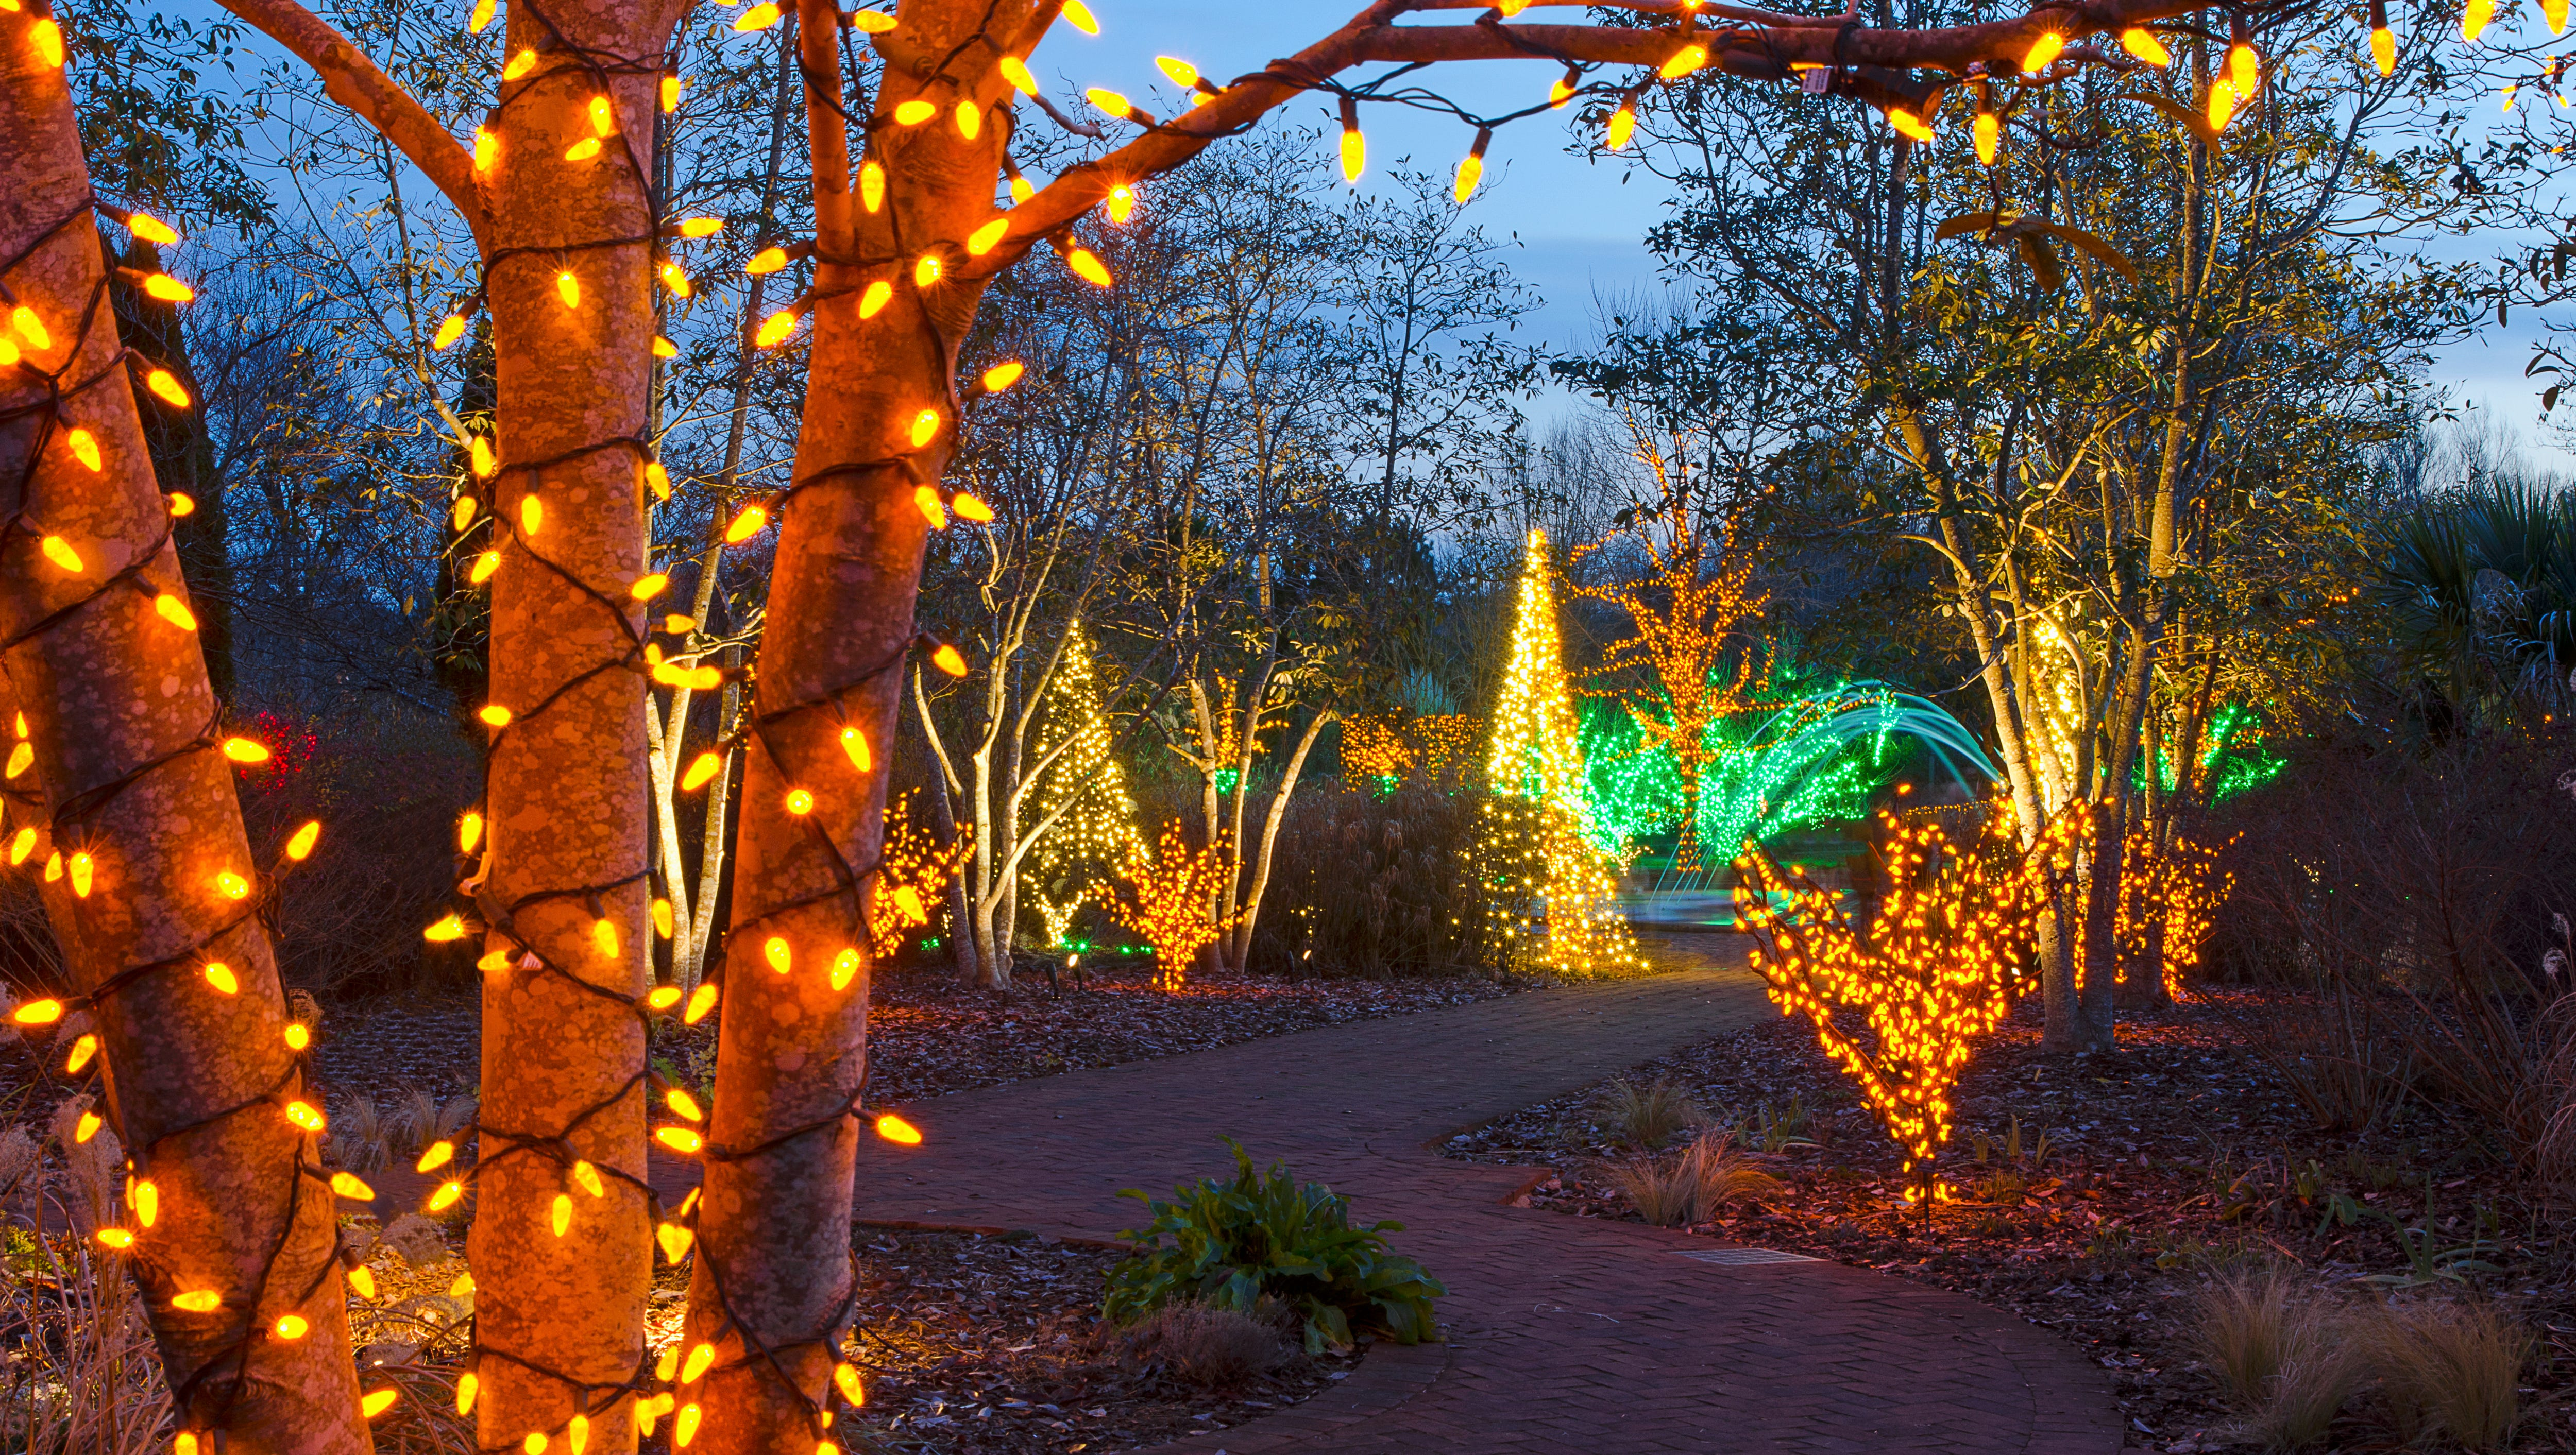 DAY 3: Win tickets to Garden of Lights